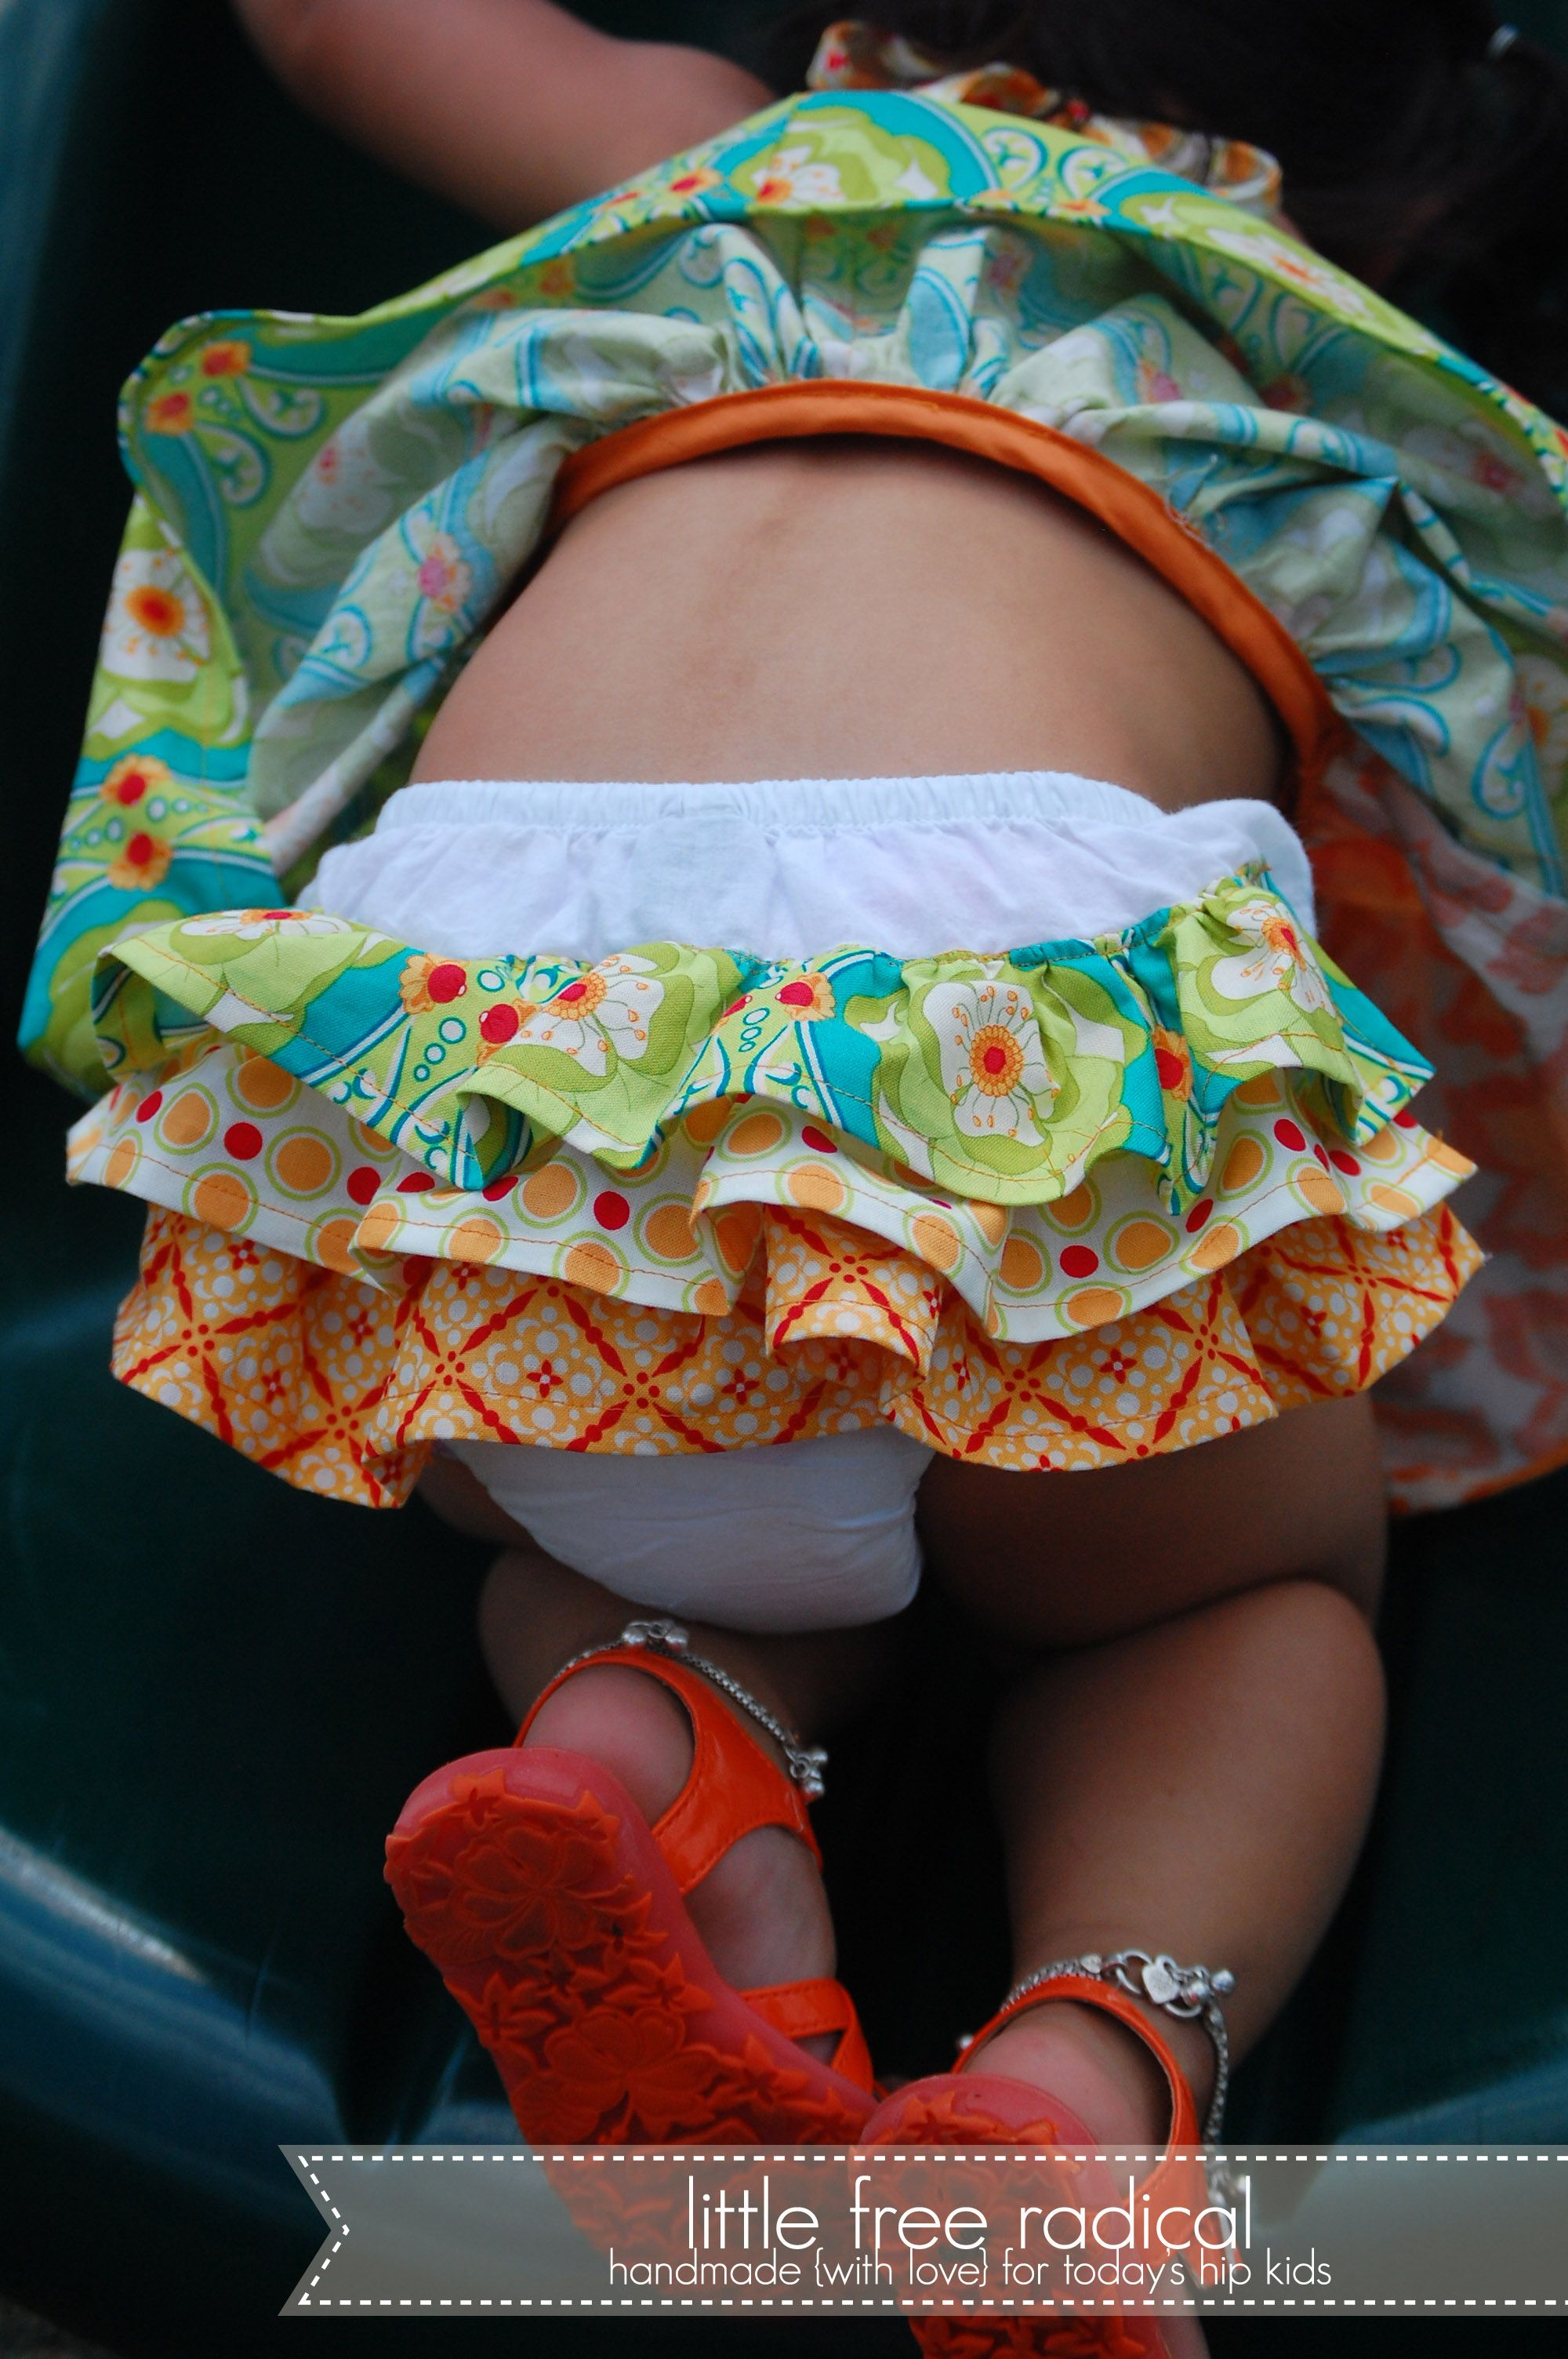 Source: littlefreeradical.com via Little Free Radical on Pinterest Yesterday, I showed you the Harlowe Halter Top I made for my daughter. Of course when you make a cute top, you need a good bottom,...